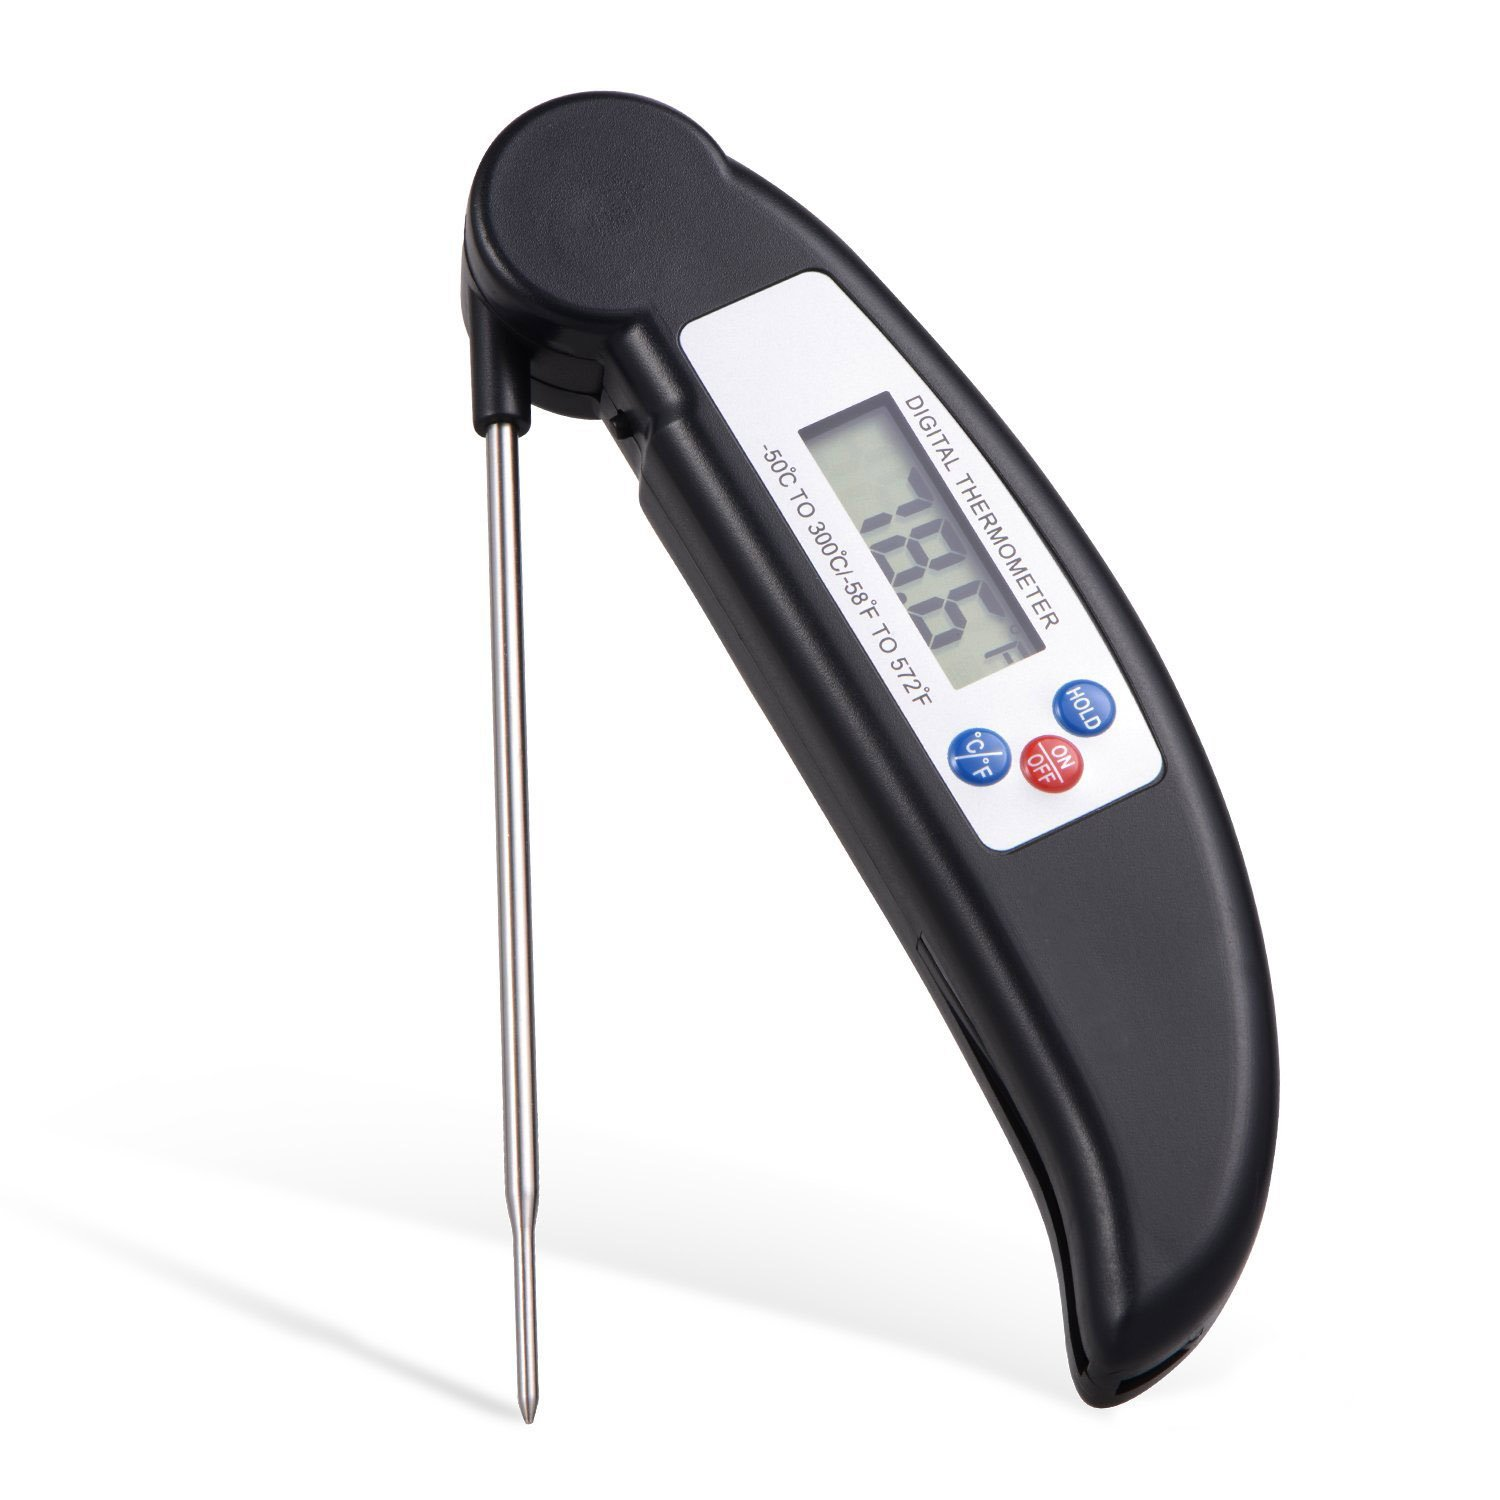 Instant Read Cooking Meat Thermometer - Super Fast Digital Electronic Kitchen Food Thermometer With Collapsible Internal Probe For Grill Cooking BBQ Oven Smoker Meat Kitchen Candy and Bath Water